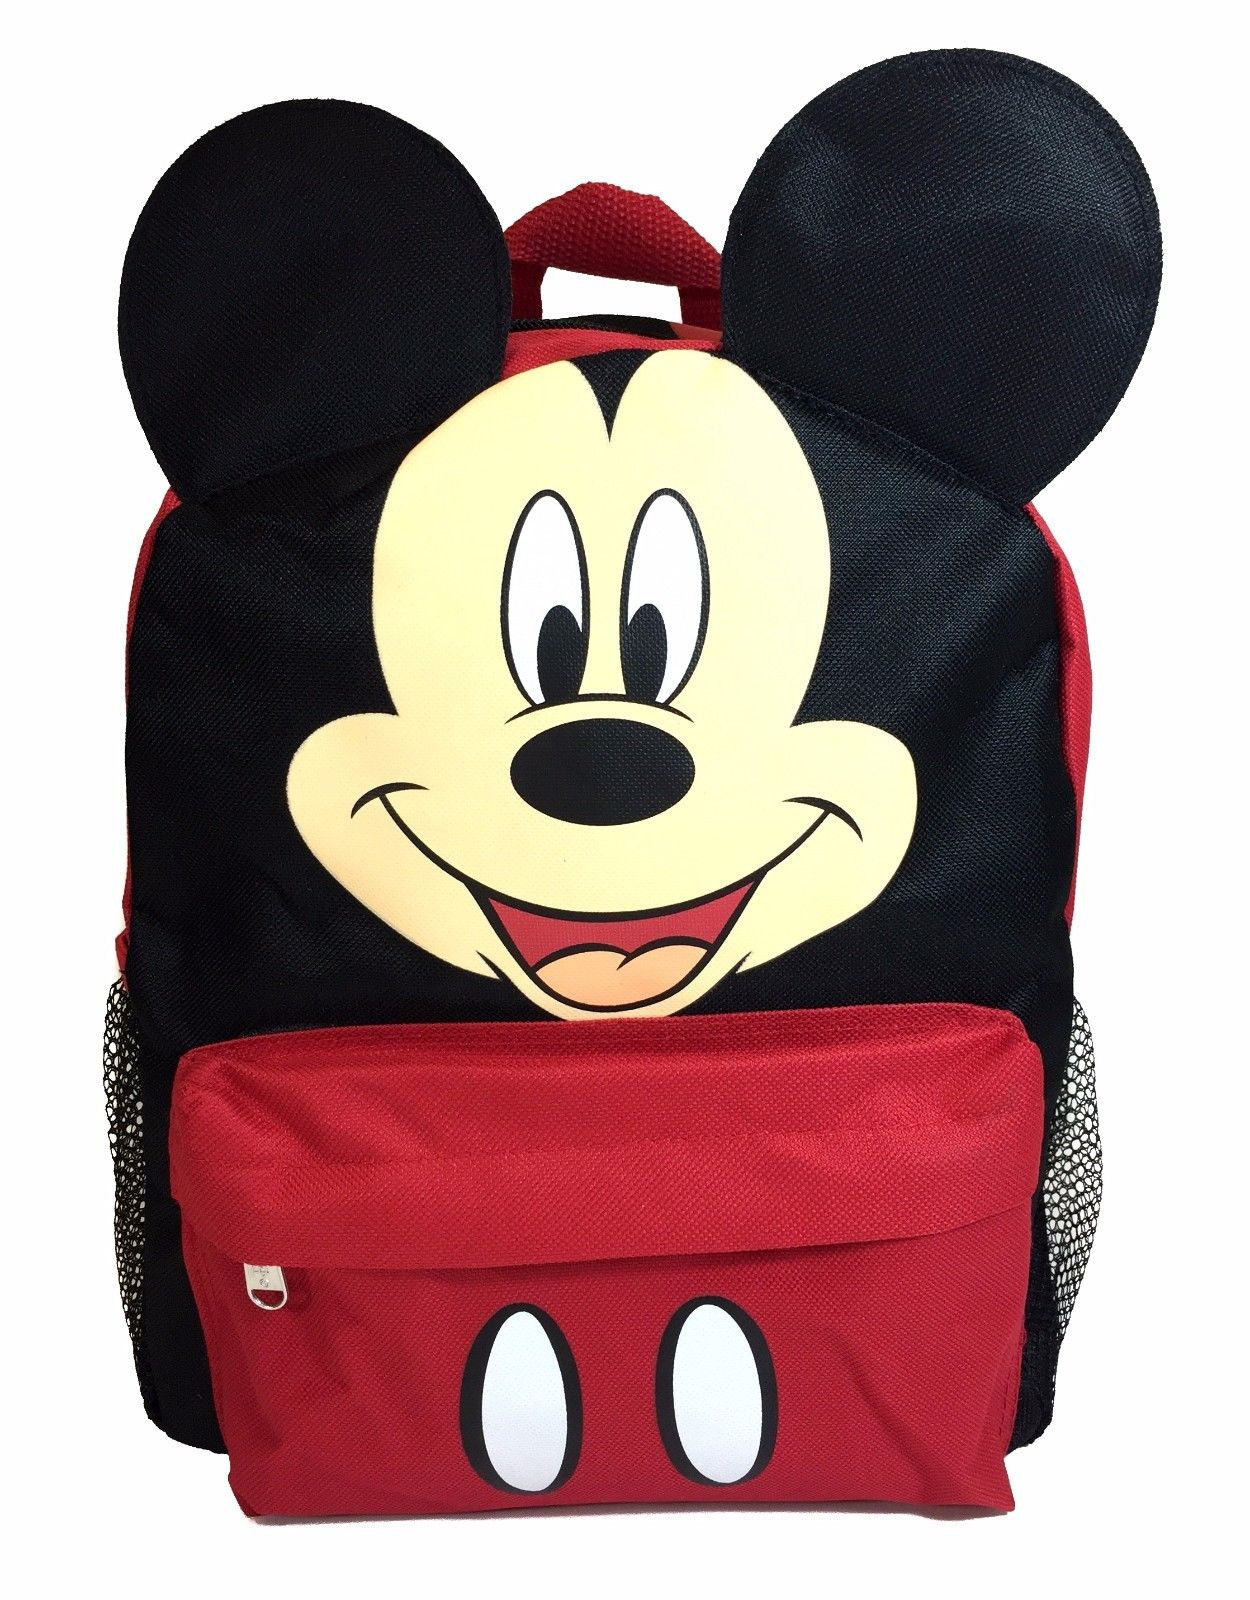 Mickey Mouse 3D Ears 12 Backpack for Kids Back to School Bag